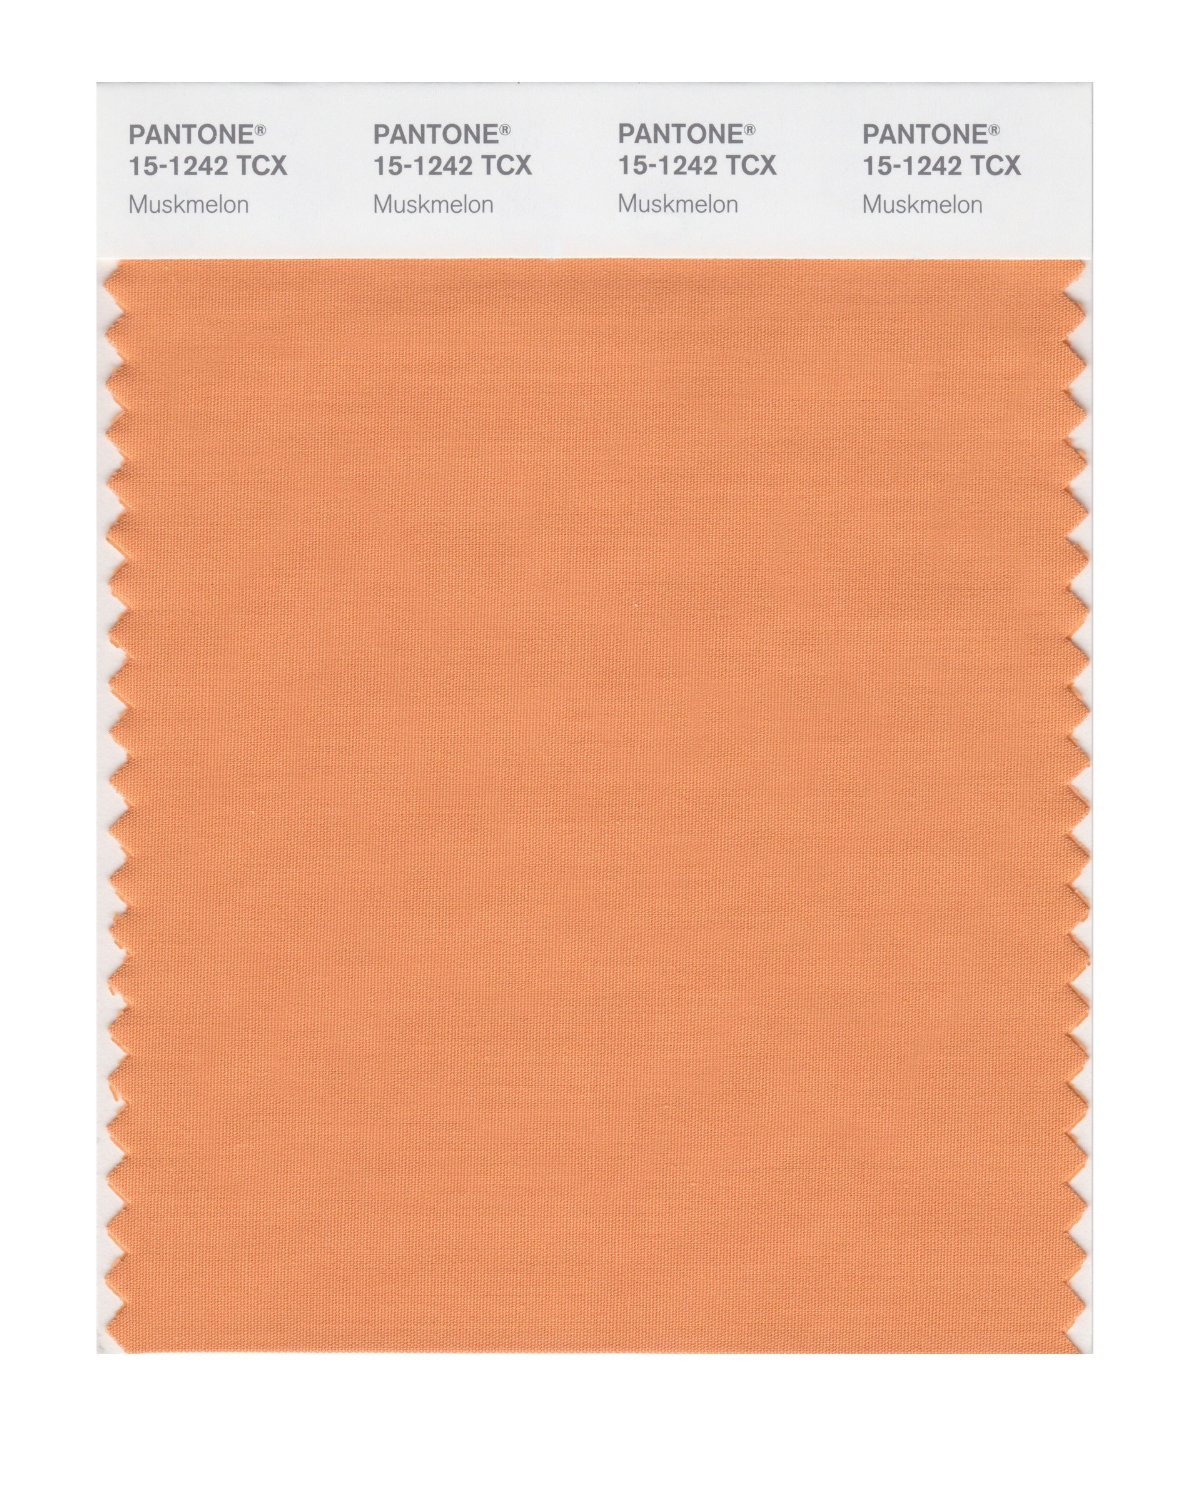 Pantone Smart Swatch 15-1242 Muskmelon